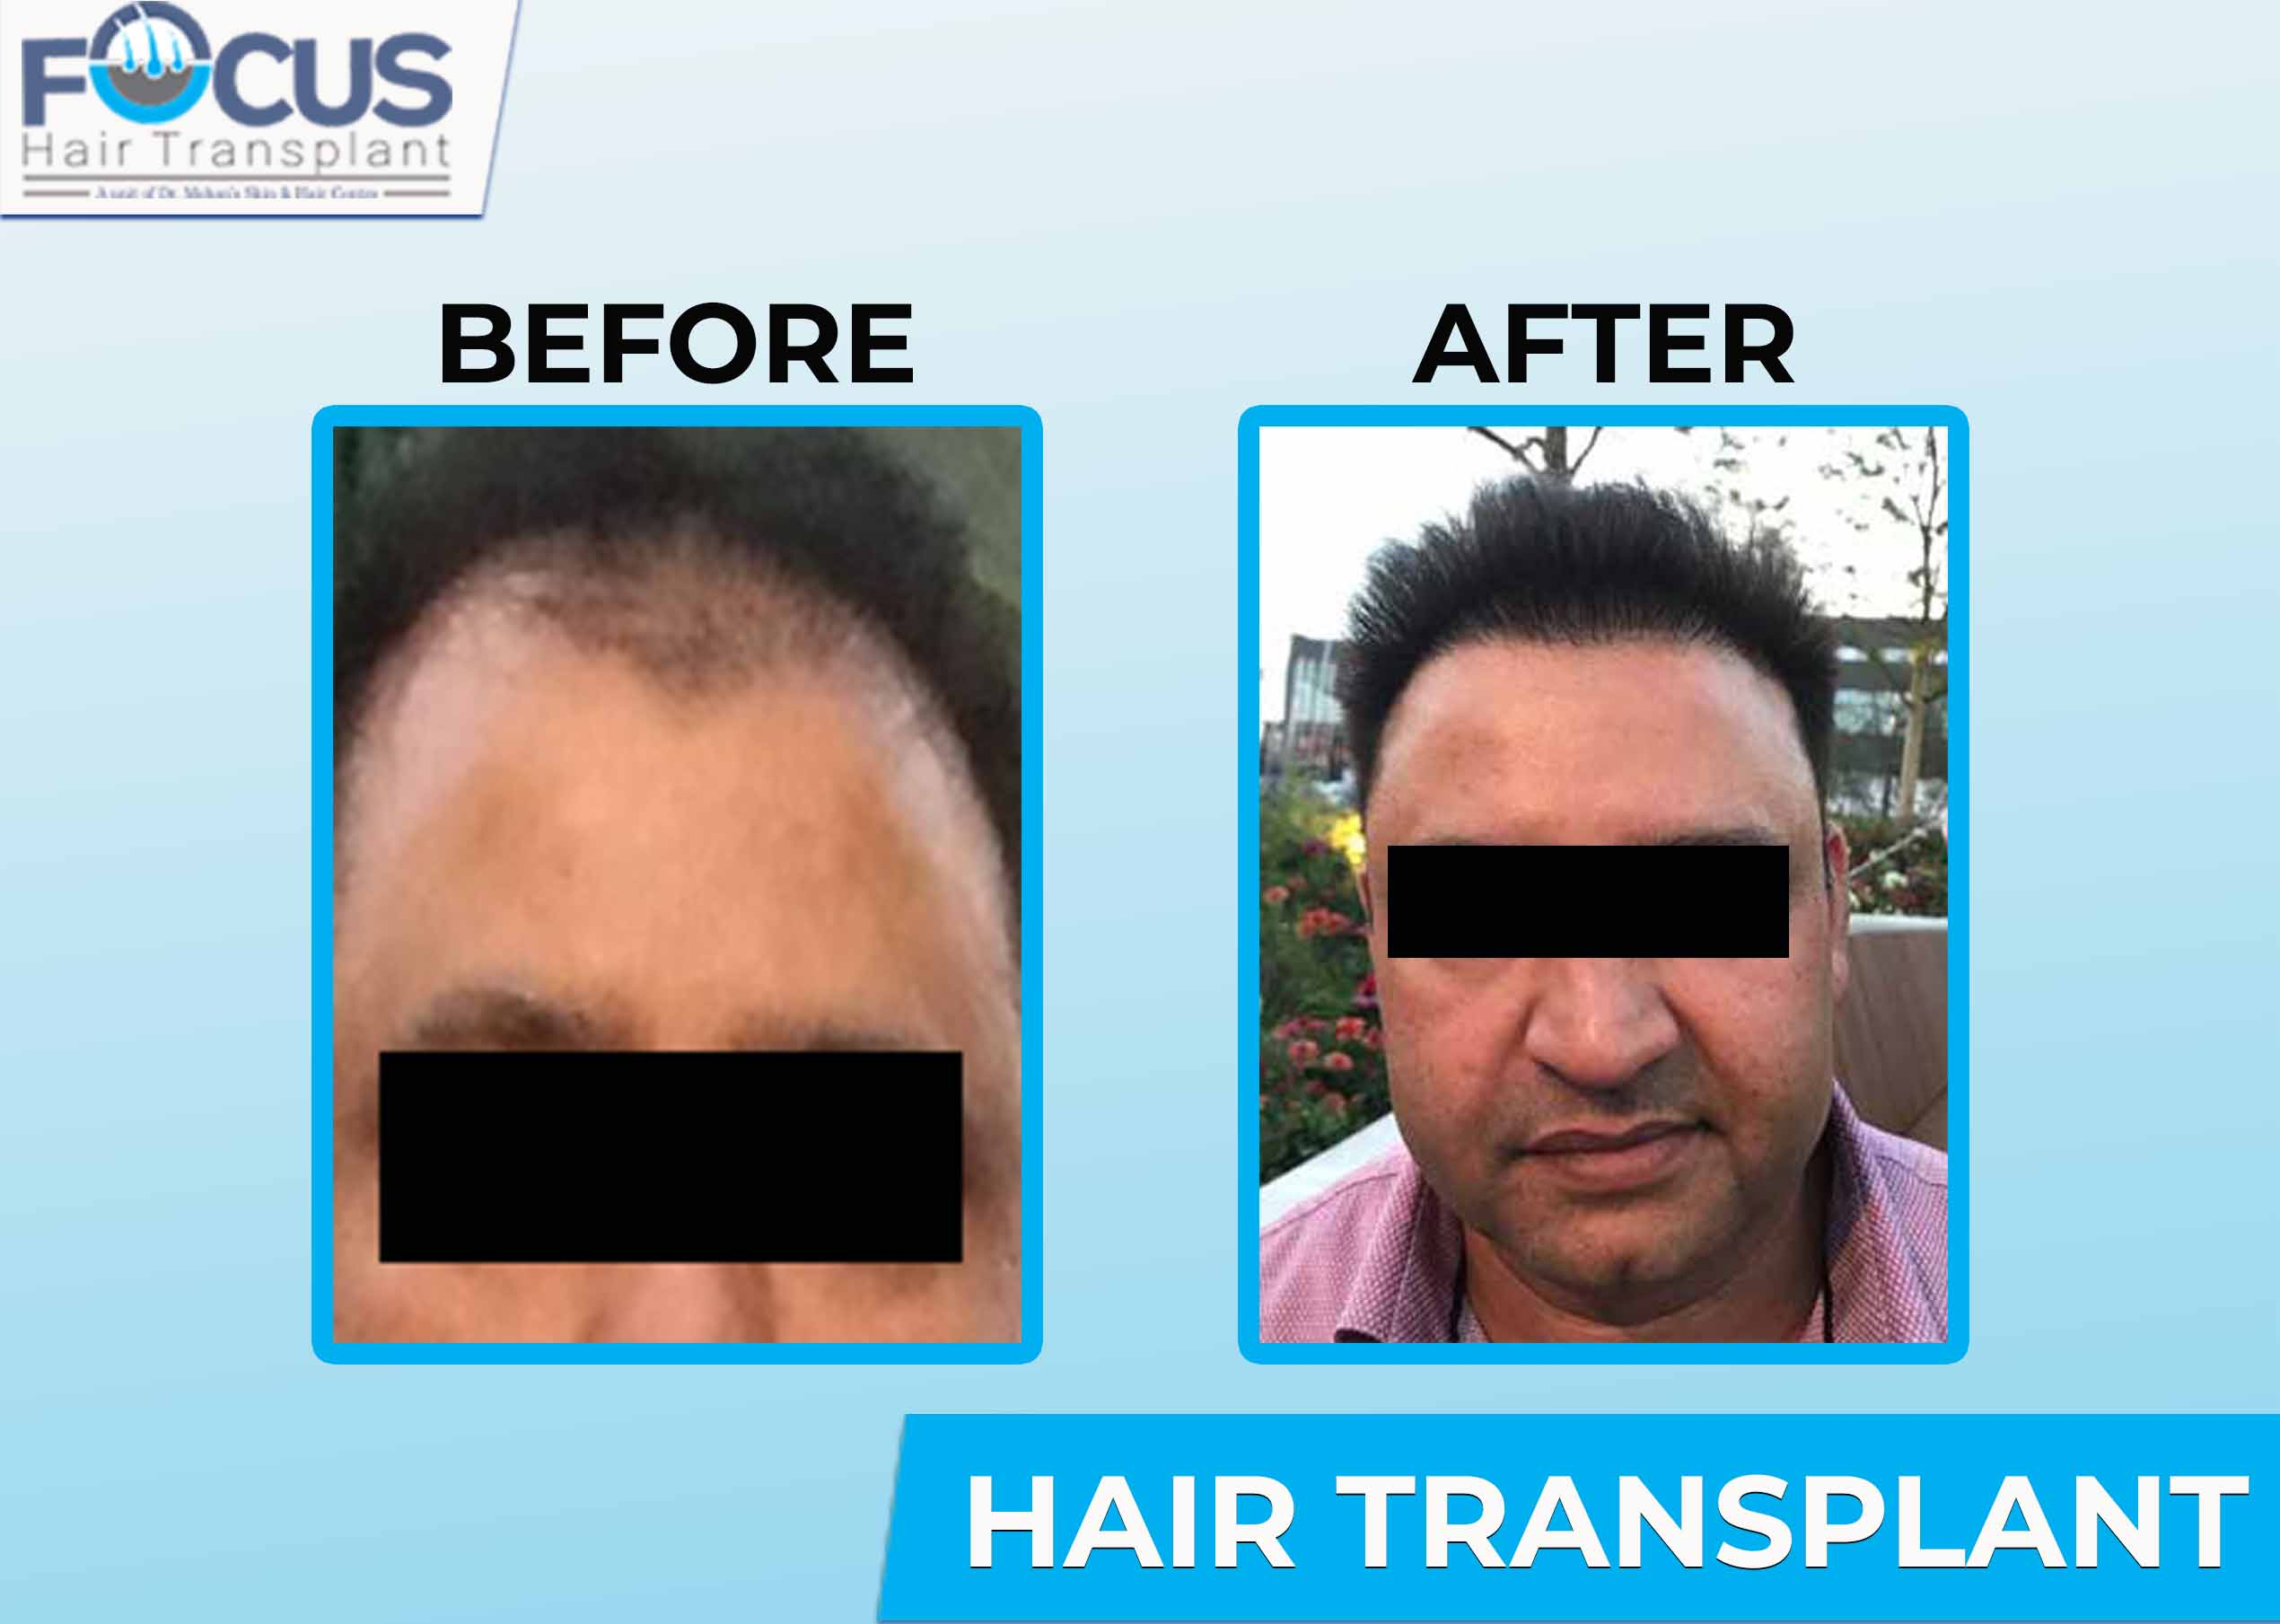 Focus Hair Transplant Centre